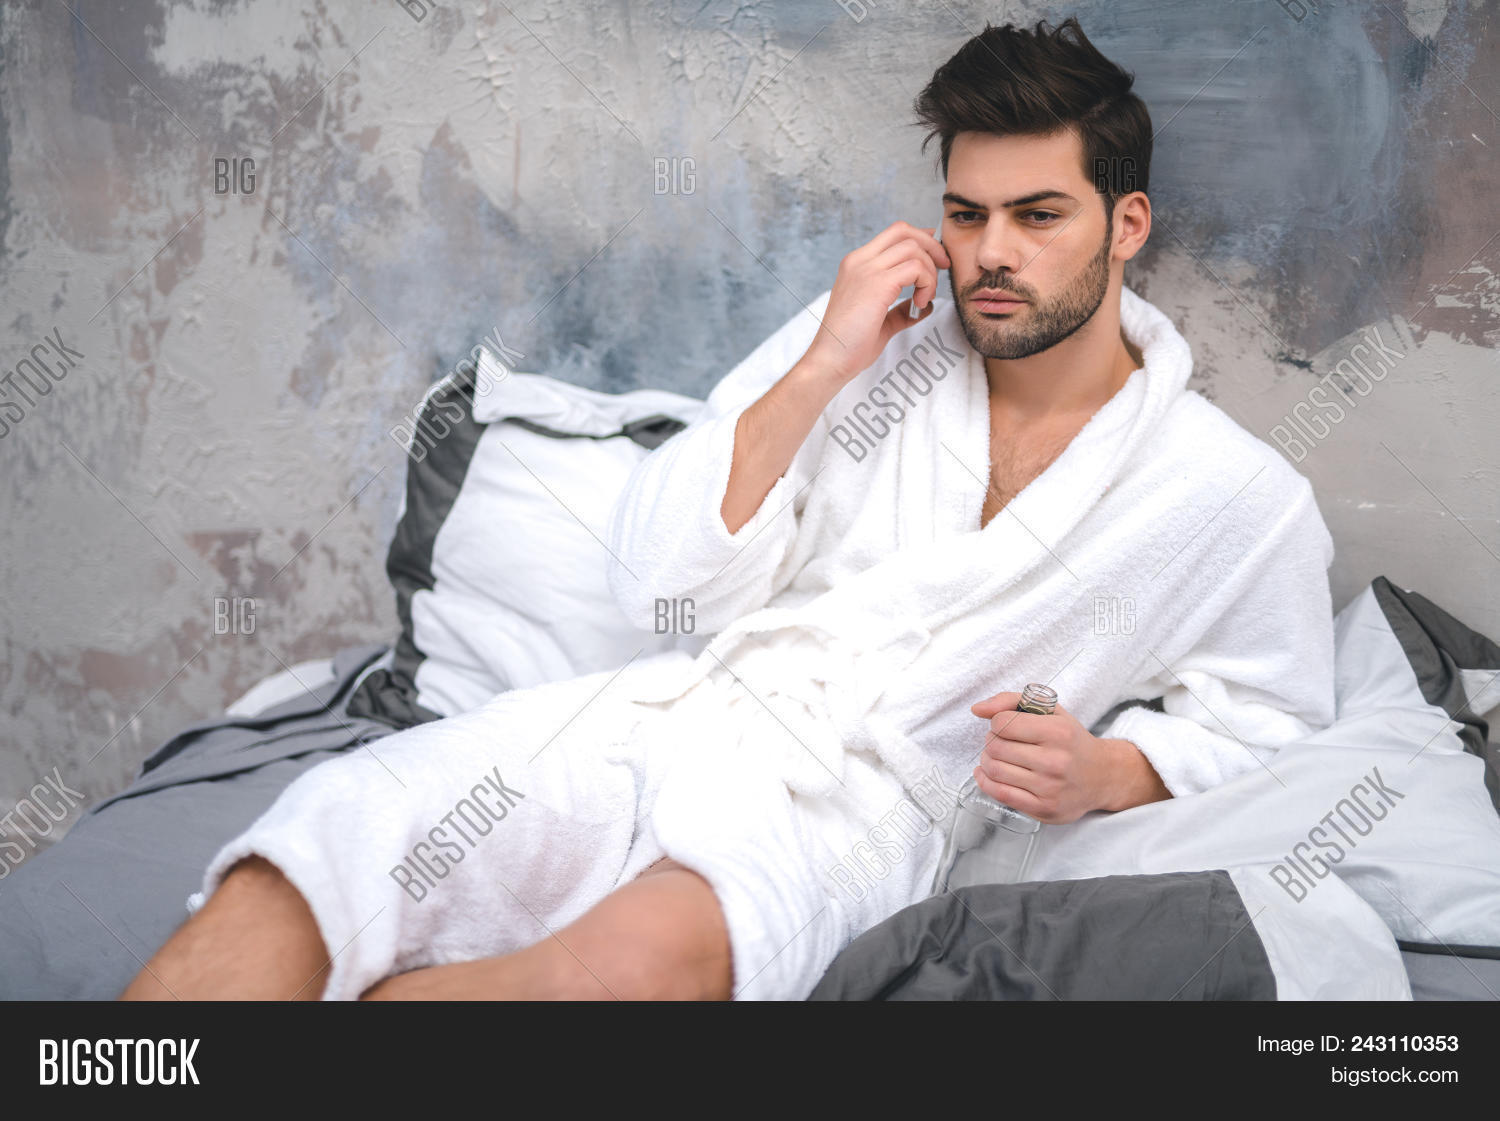 Man Dressing Gown Image Photo Free Trial Bigstock